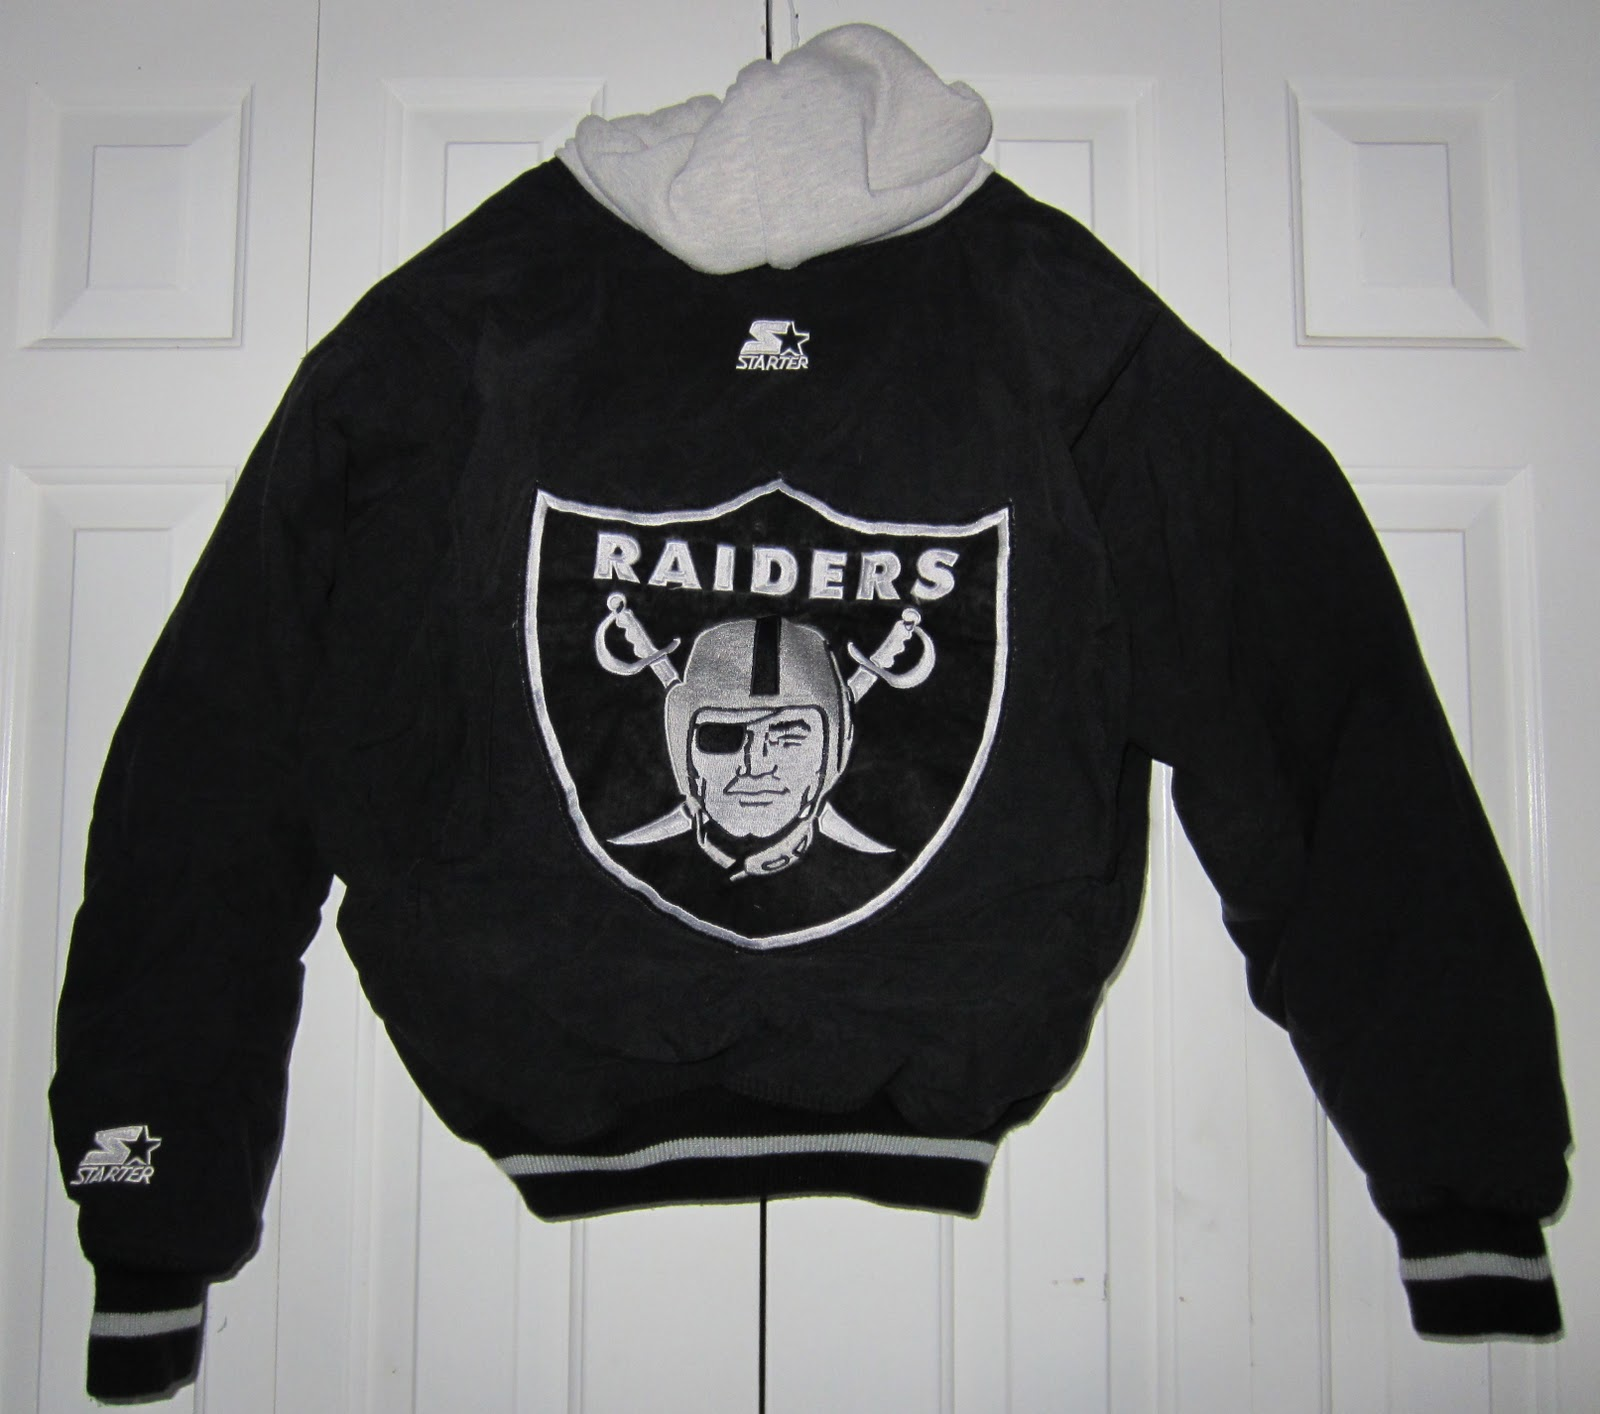 Raiders Letterman Jacket | La Raiders Starter Jacket | Raiders Letterman Jacket